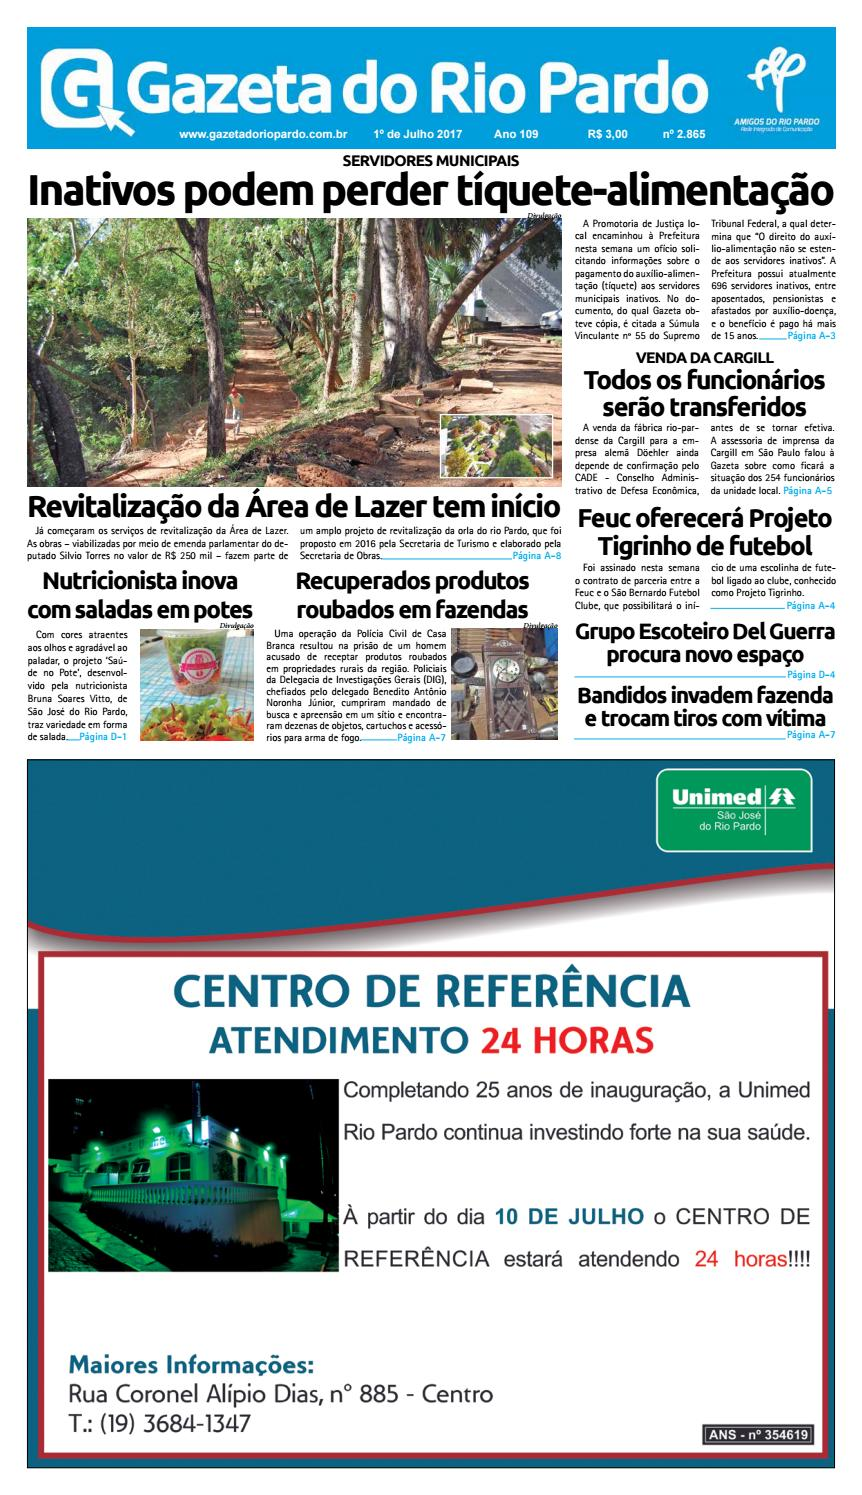 e76afa70956 2017-07-01 - Gazeta do Rio Pardo by Gazeta do rio Pardo - issuu